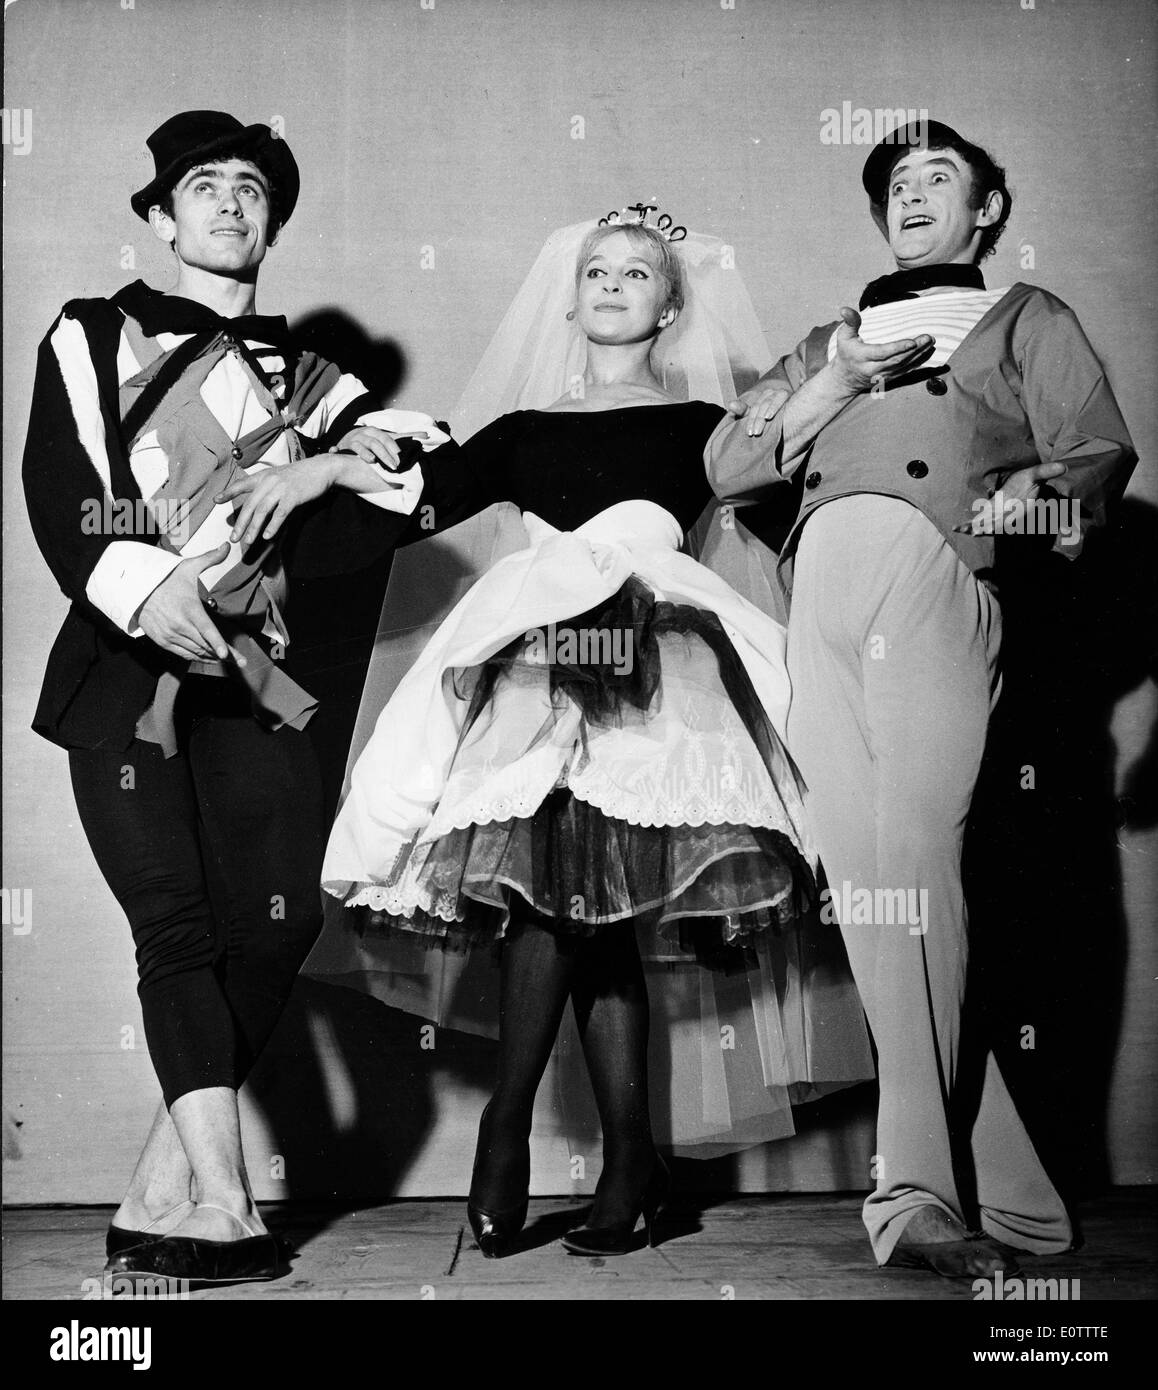 Mime Marcel Marceau on stage with co-stars - Stock Image